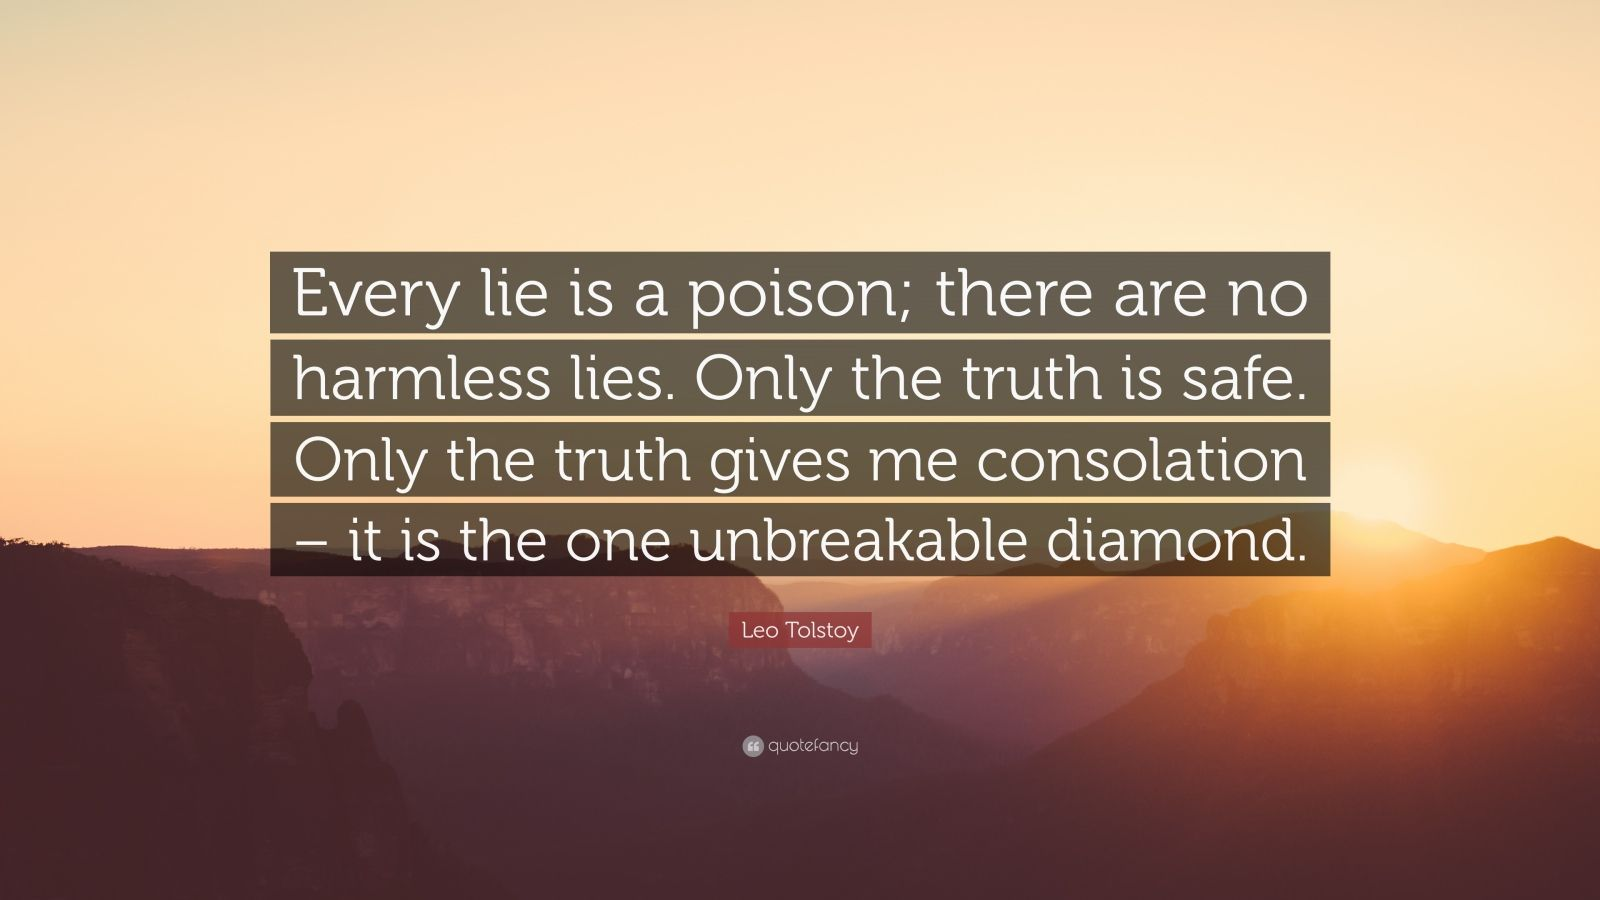 """Leo Tolstoy Quote: """"Every lie is a poison; there are no harmless lies. Only the truth is safe. Only the truth gives me consolation – it is the one unbreakable diamond."""""""